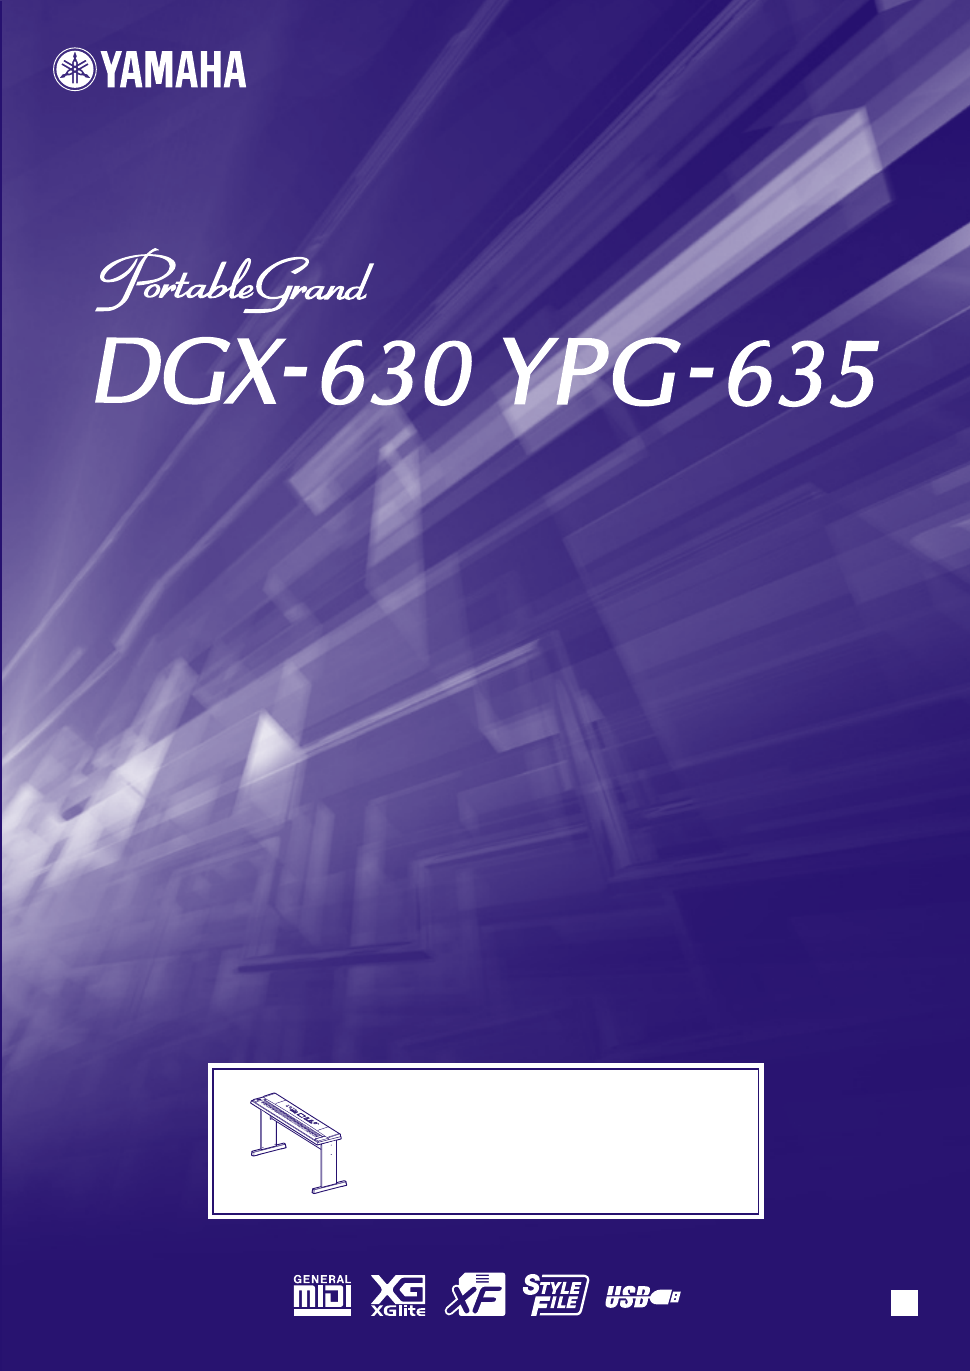 Yamaha DGX-630 Owner's Manual - Free PDF Download (154 Pages)